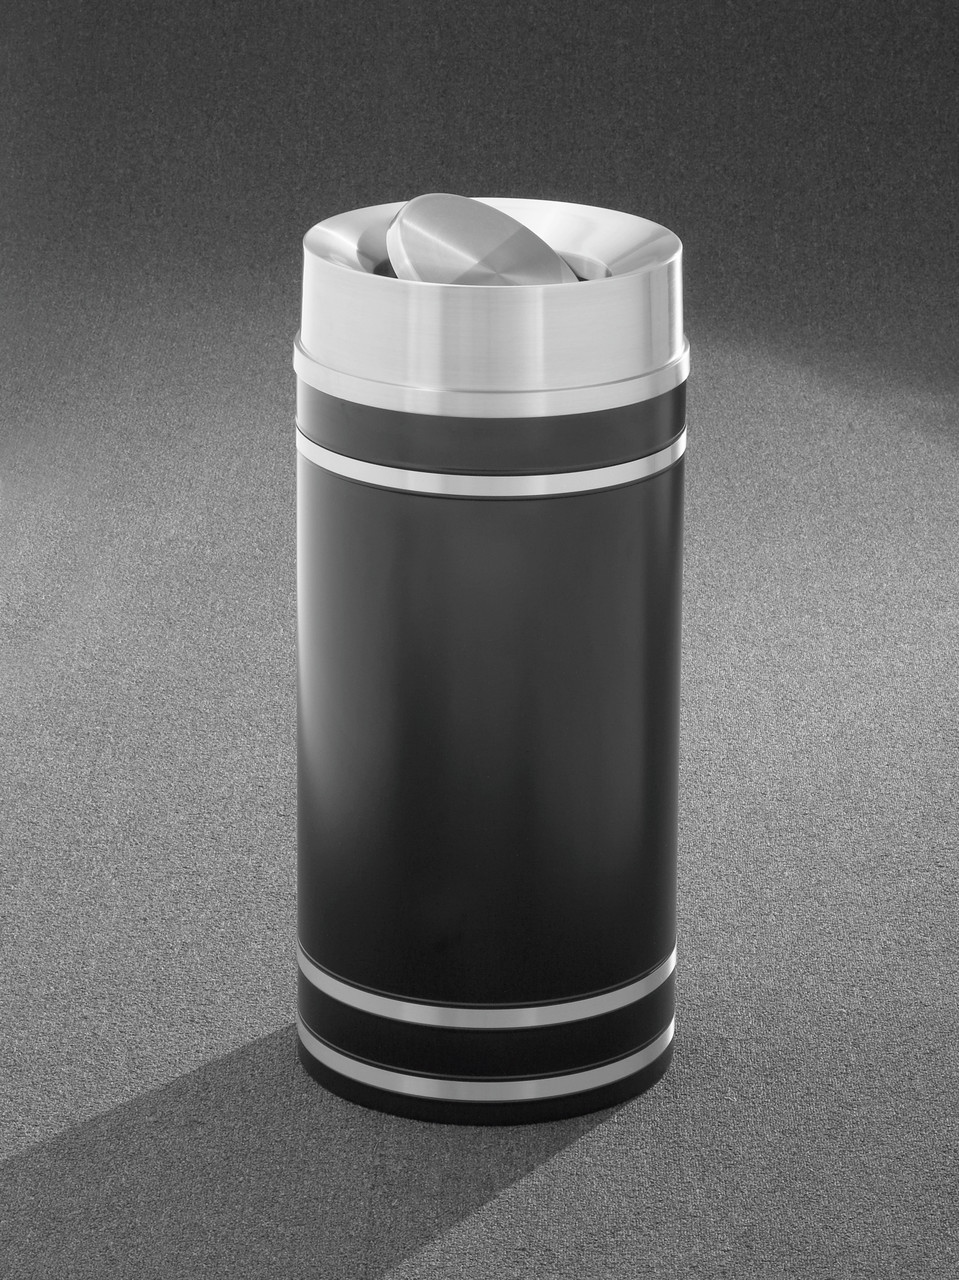 Monte Carlo TA1255 Tip Action Top Trash Can Satin Aluminum Cover and Bands 16 Gallon